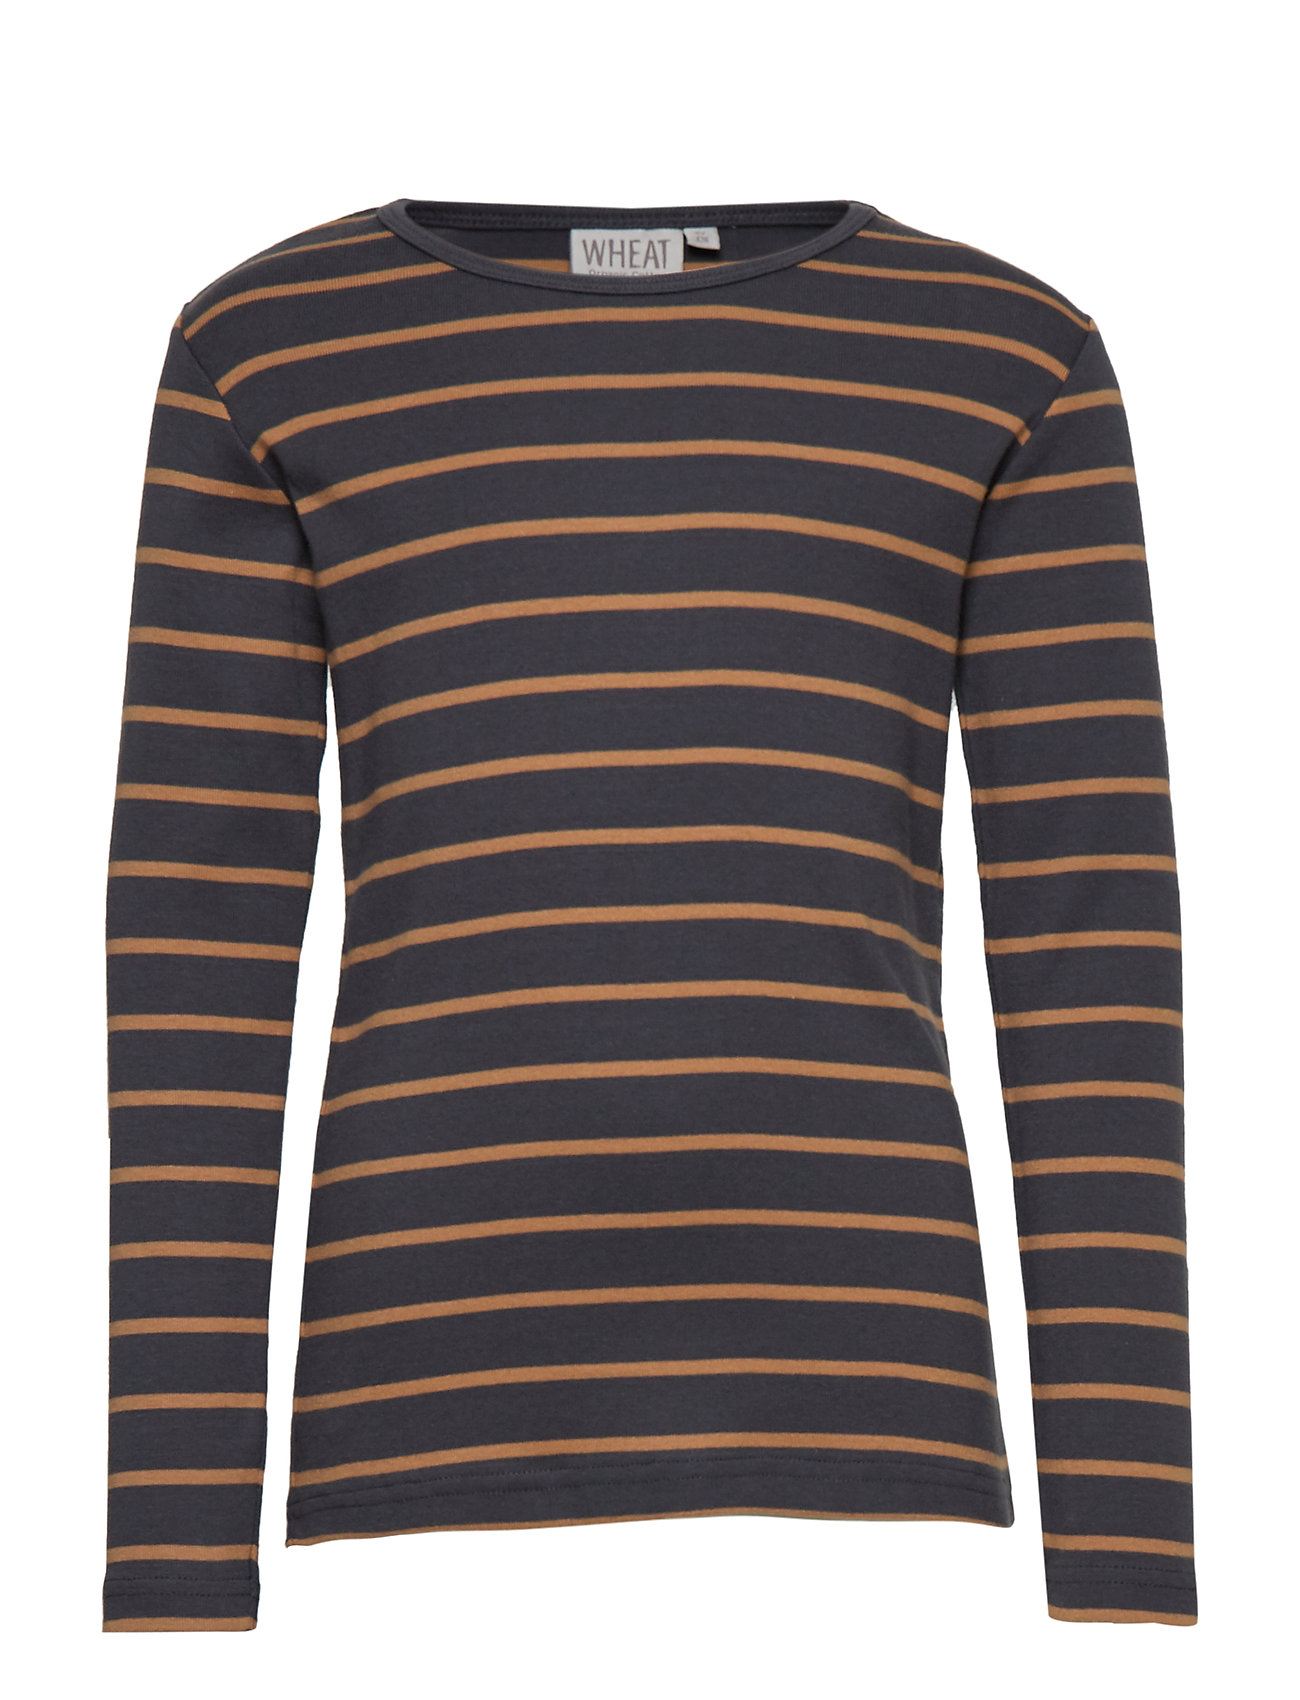 Wheat T-Shirt Striped LS - CARAMEL